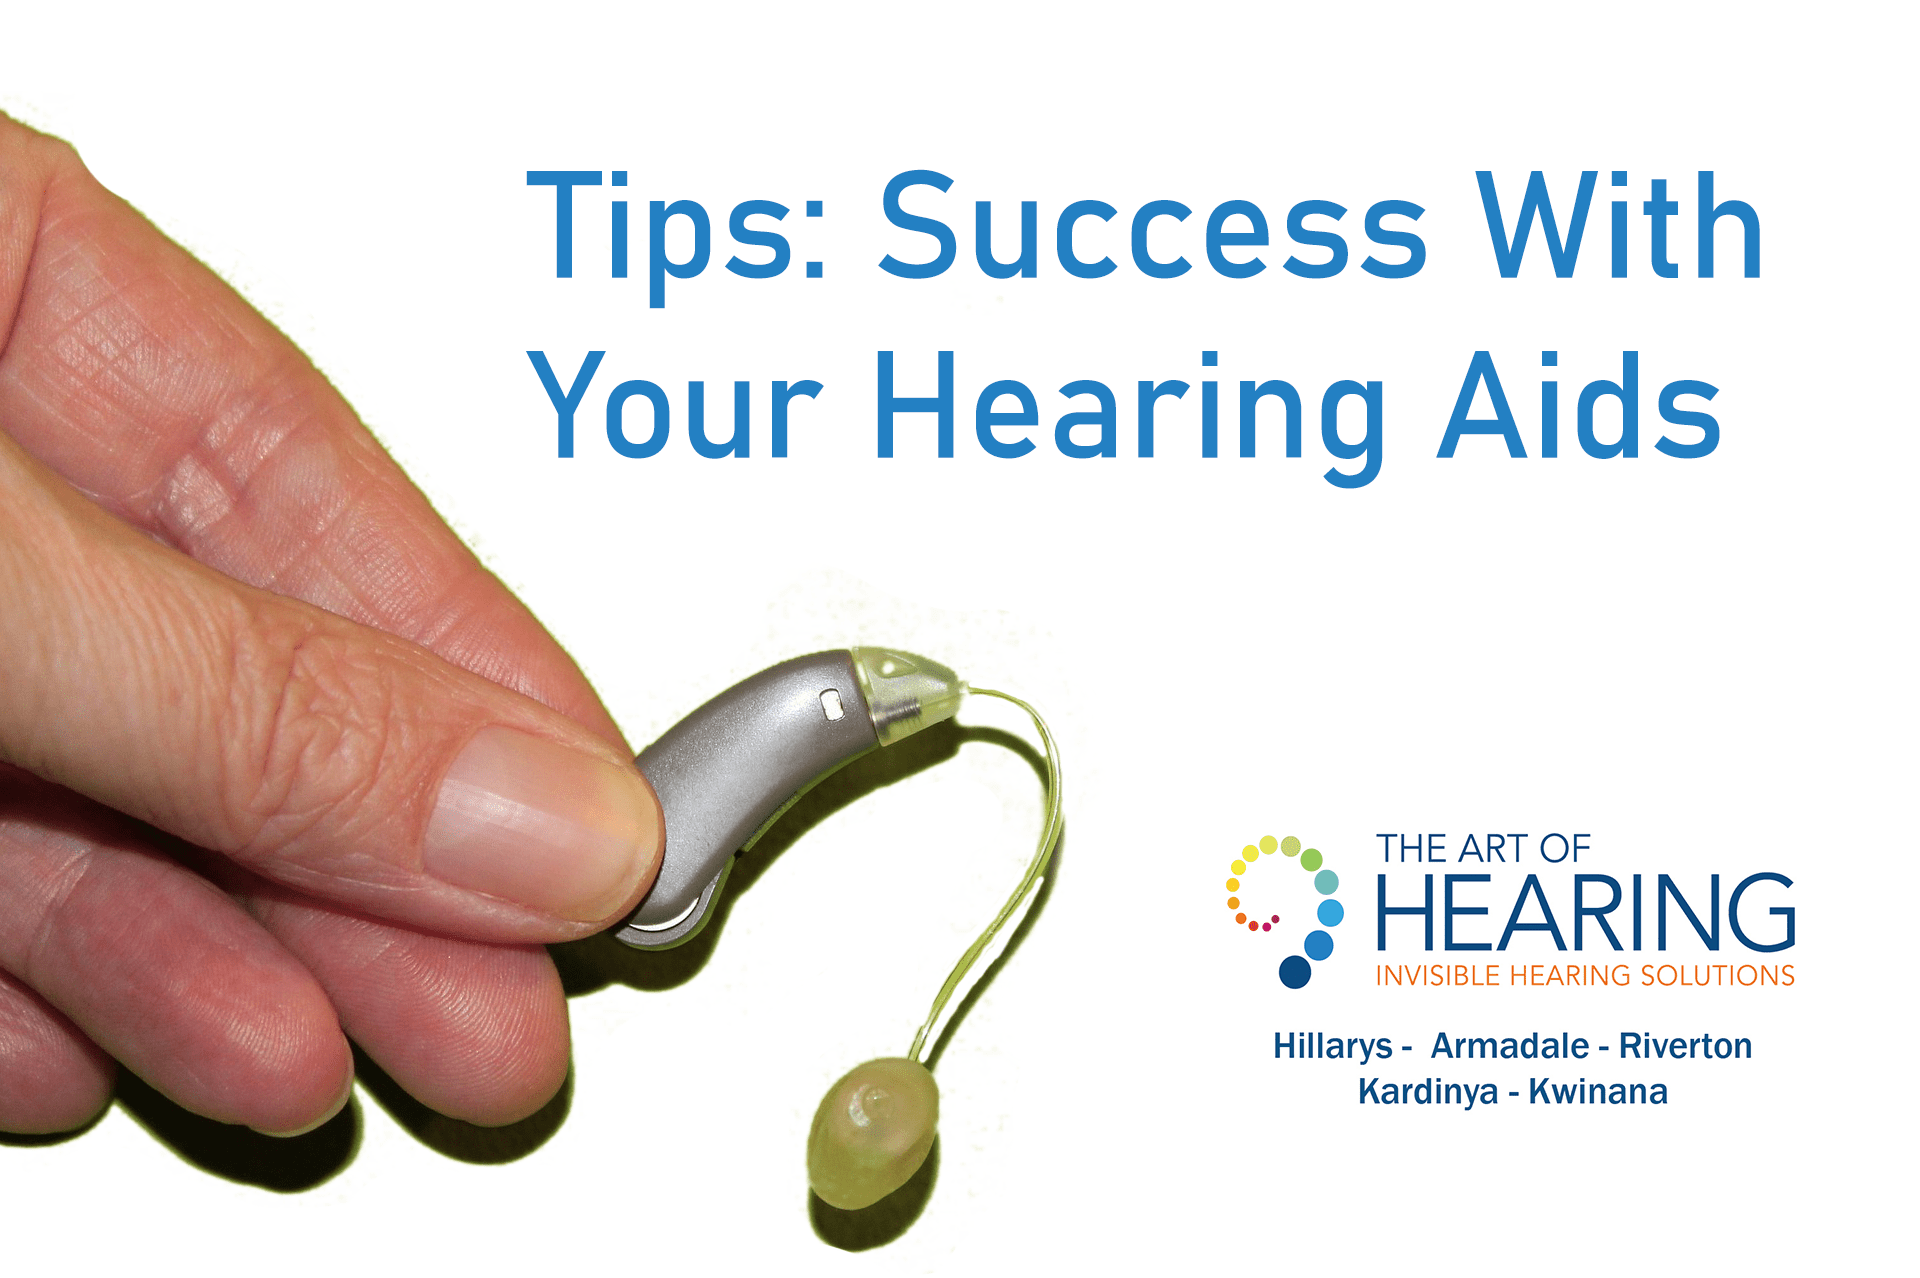 Tips Success with Hearing Aids - Blog by Art of Hearing